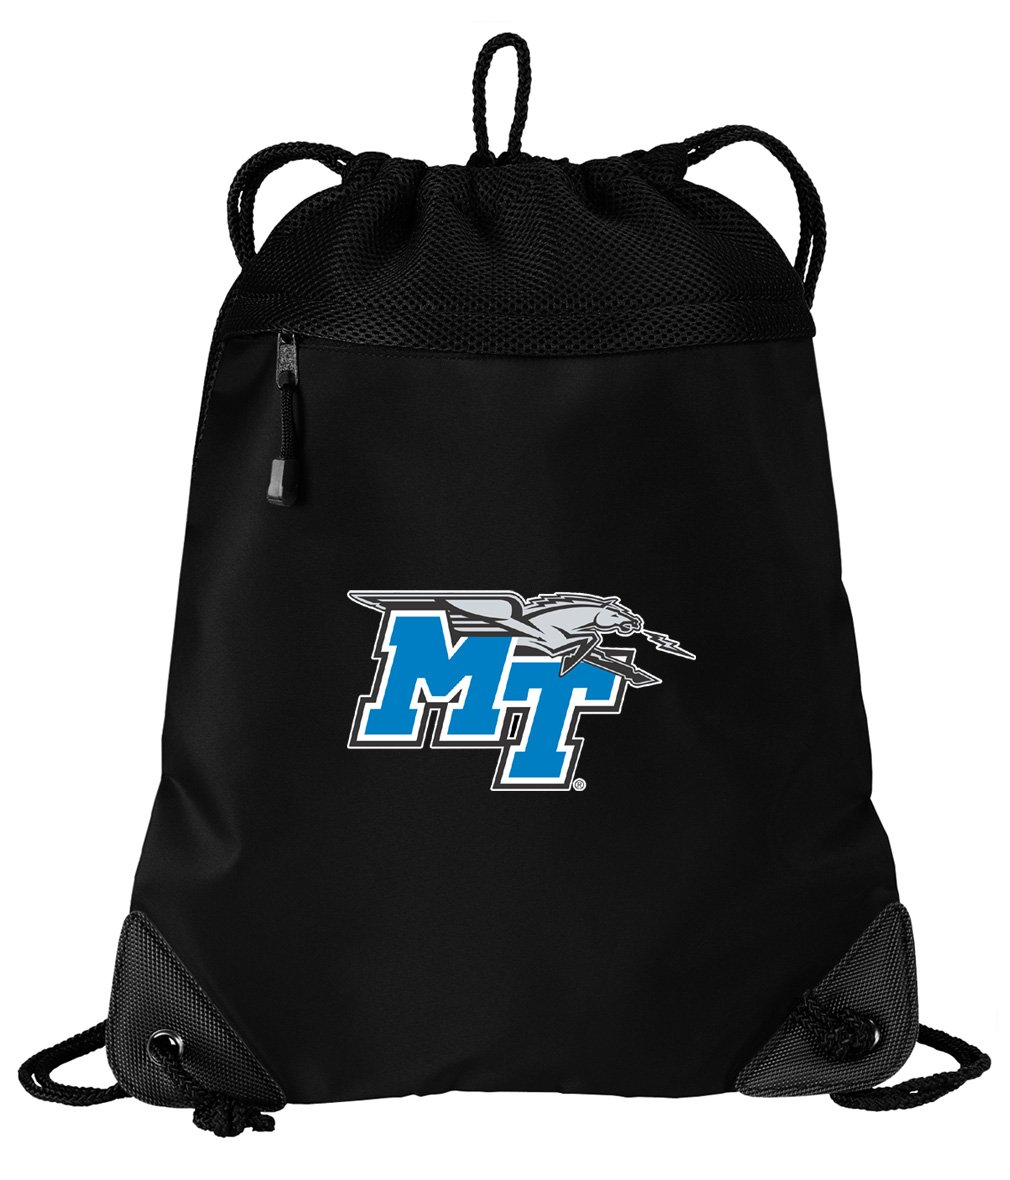 MT巾着バッグMiddle Tennessee Cinch PackバックパックUniqueメッシュ&マイクロファイバー   B07DFV49D9